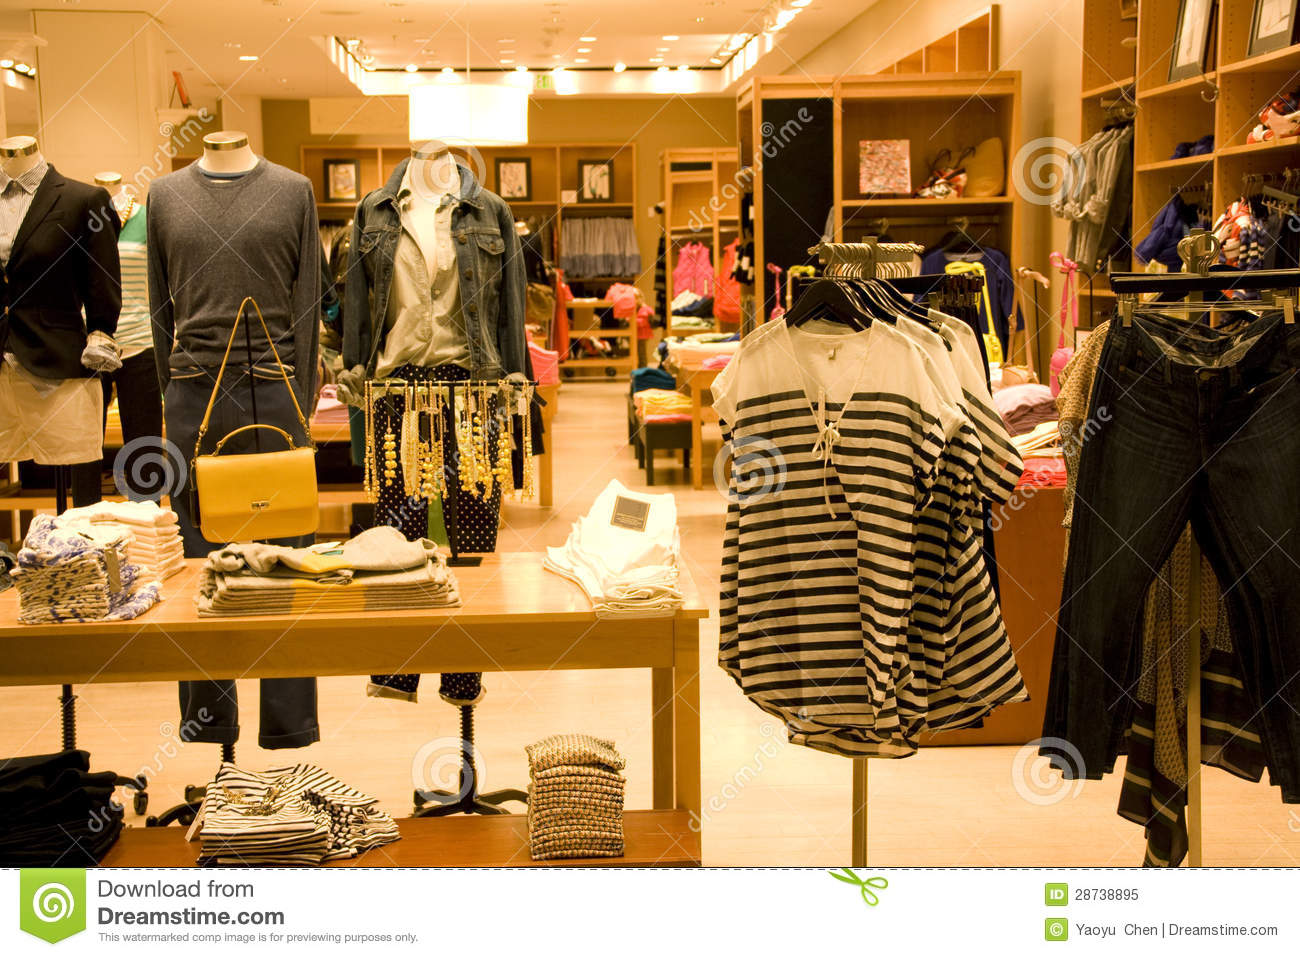 Clothing Store Free Stock Photo - Public Domain Pictures